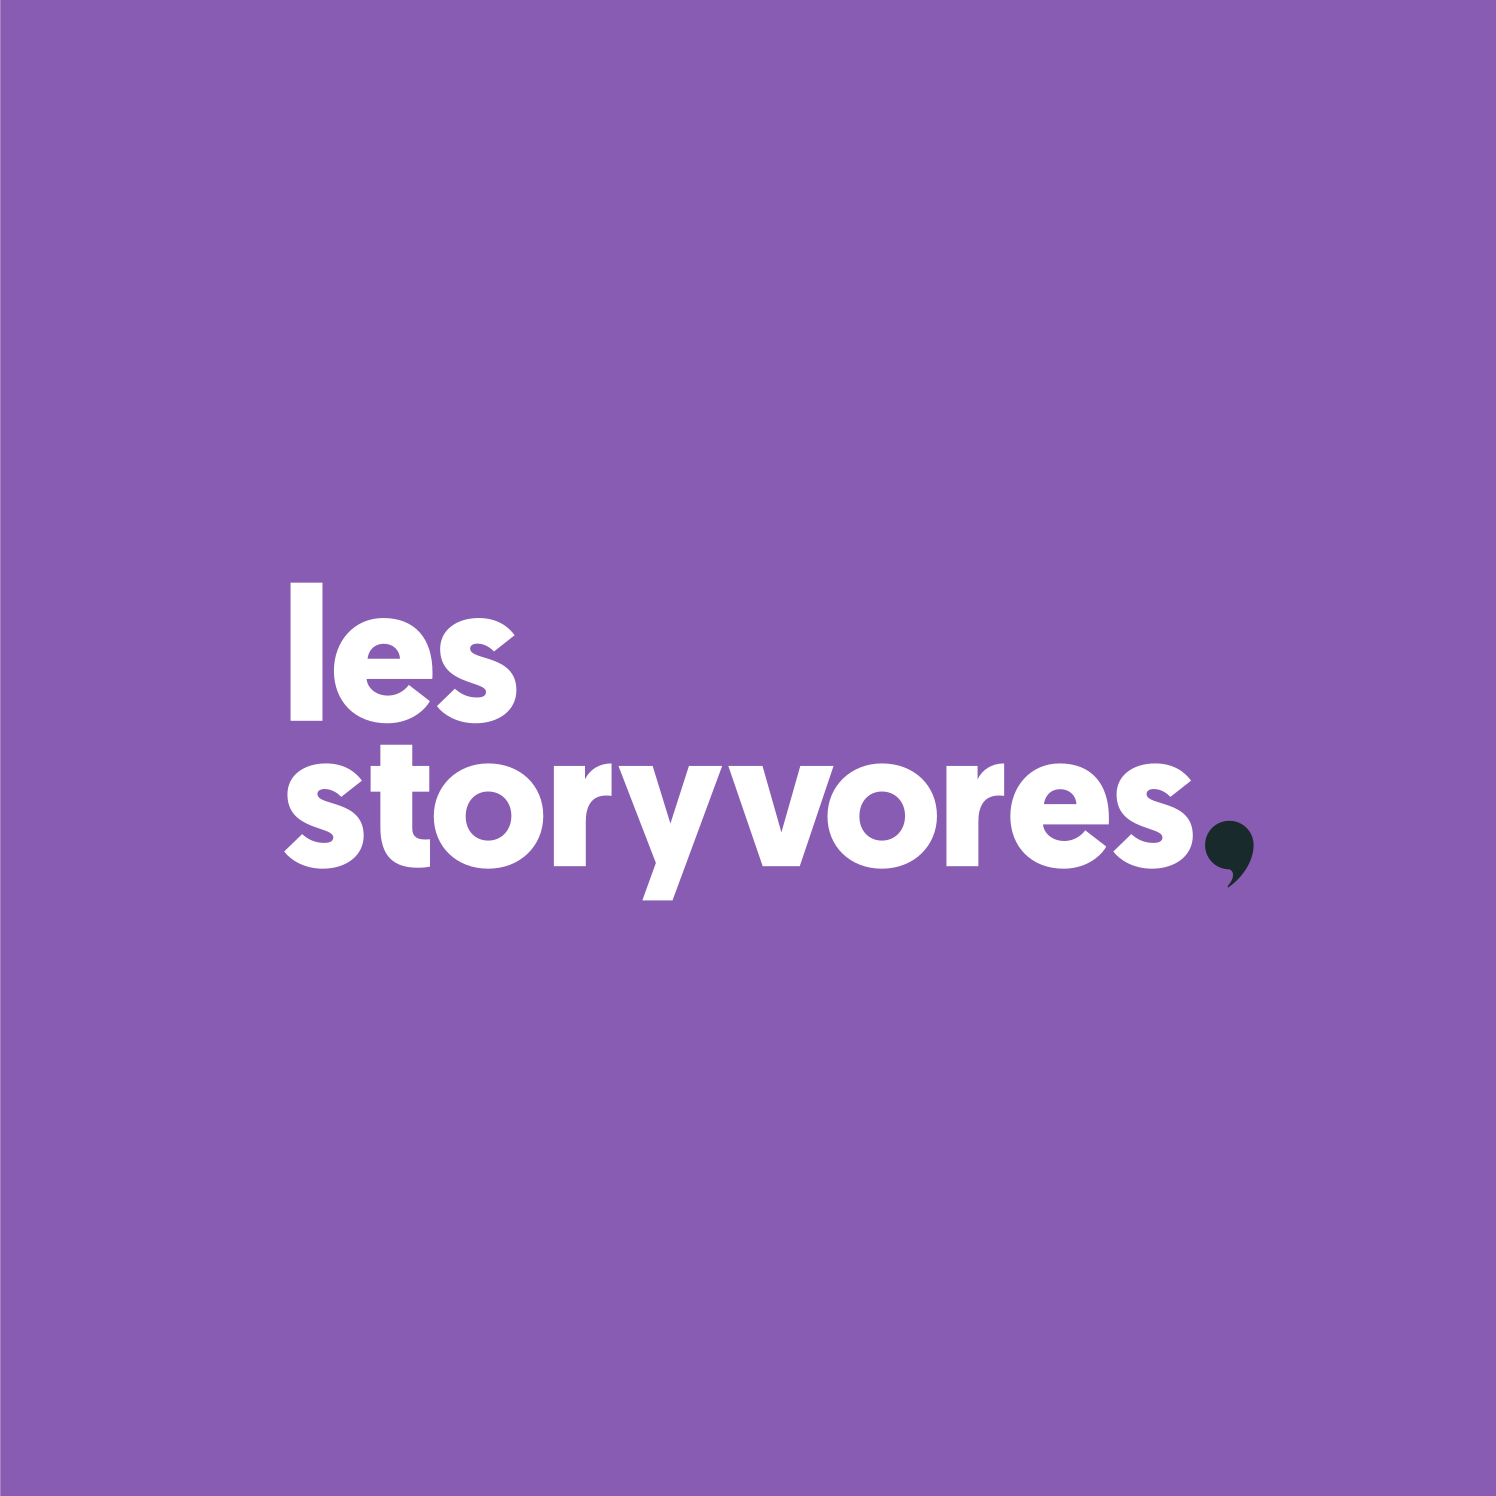 les storyvores